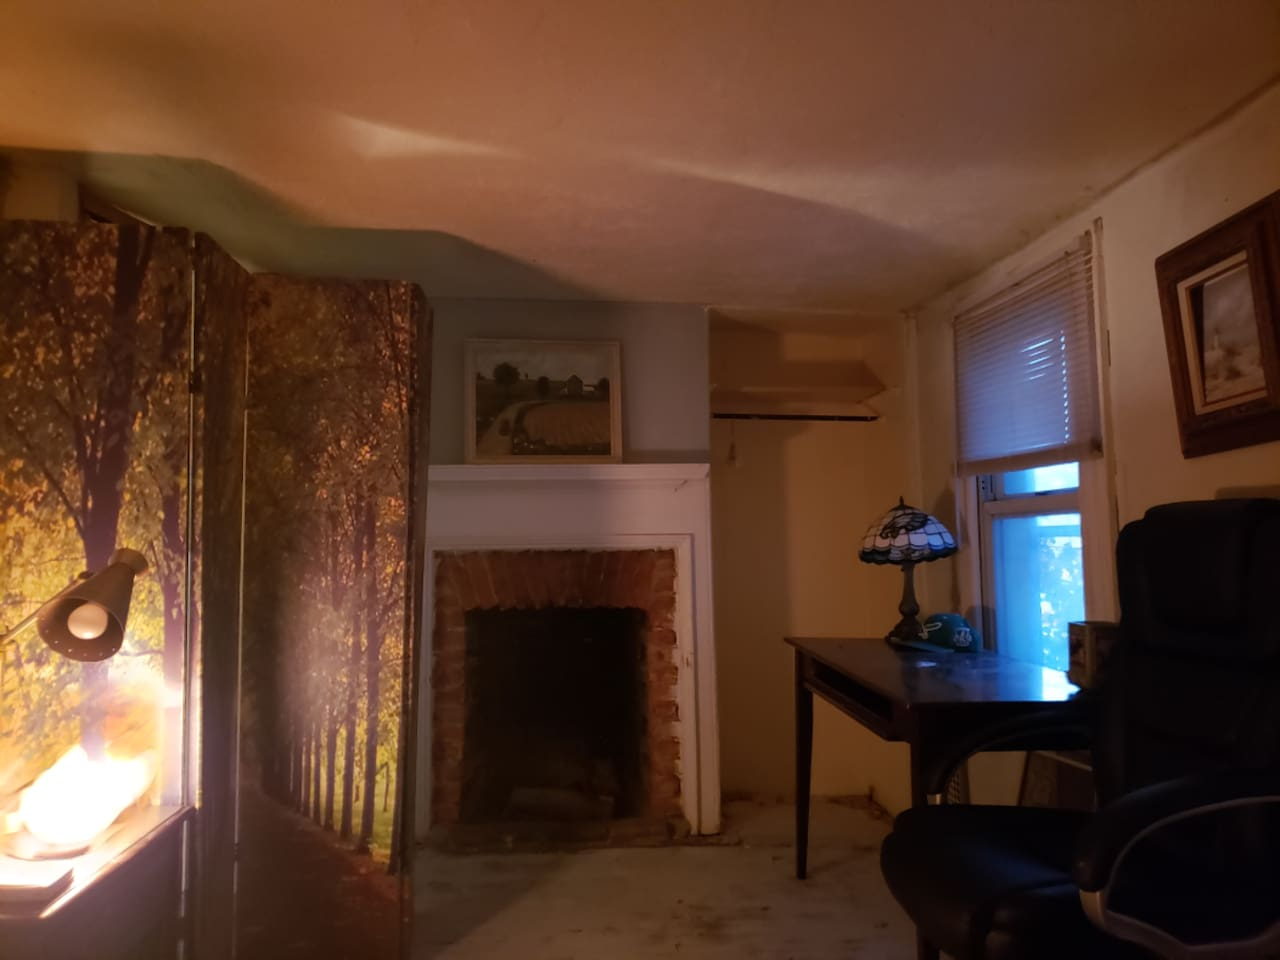 Cozy bedroom located in beautiful Fishtown with a comfy mattress, and fireplace